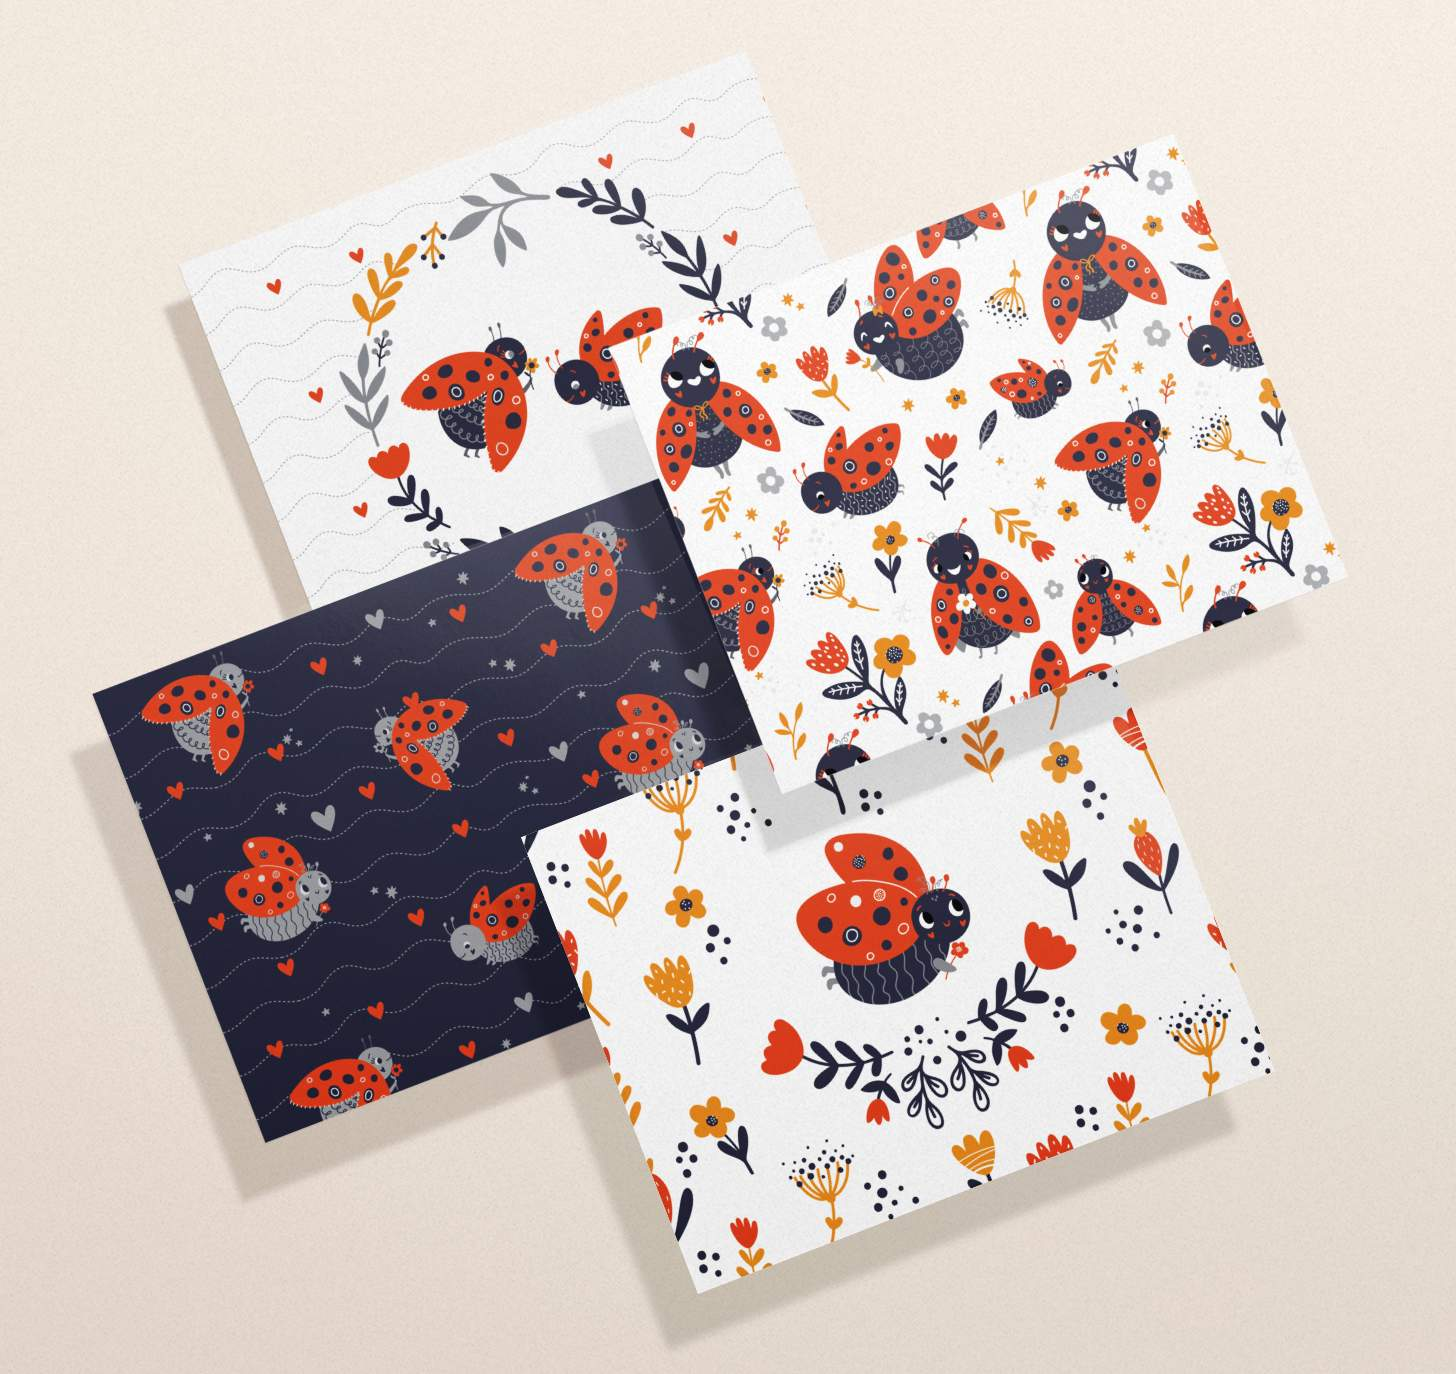 Four overlapping cards with assorted colorful bumble bee designs